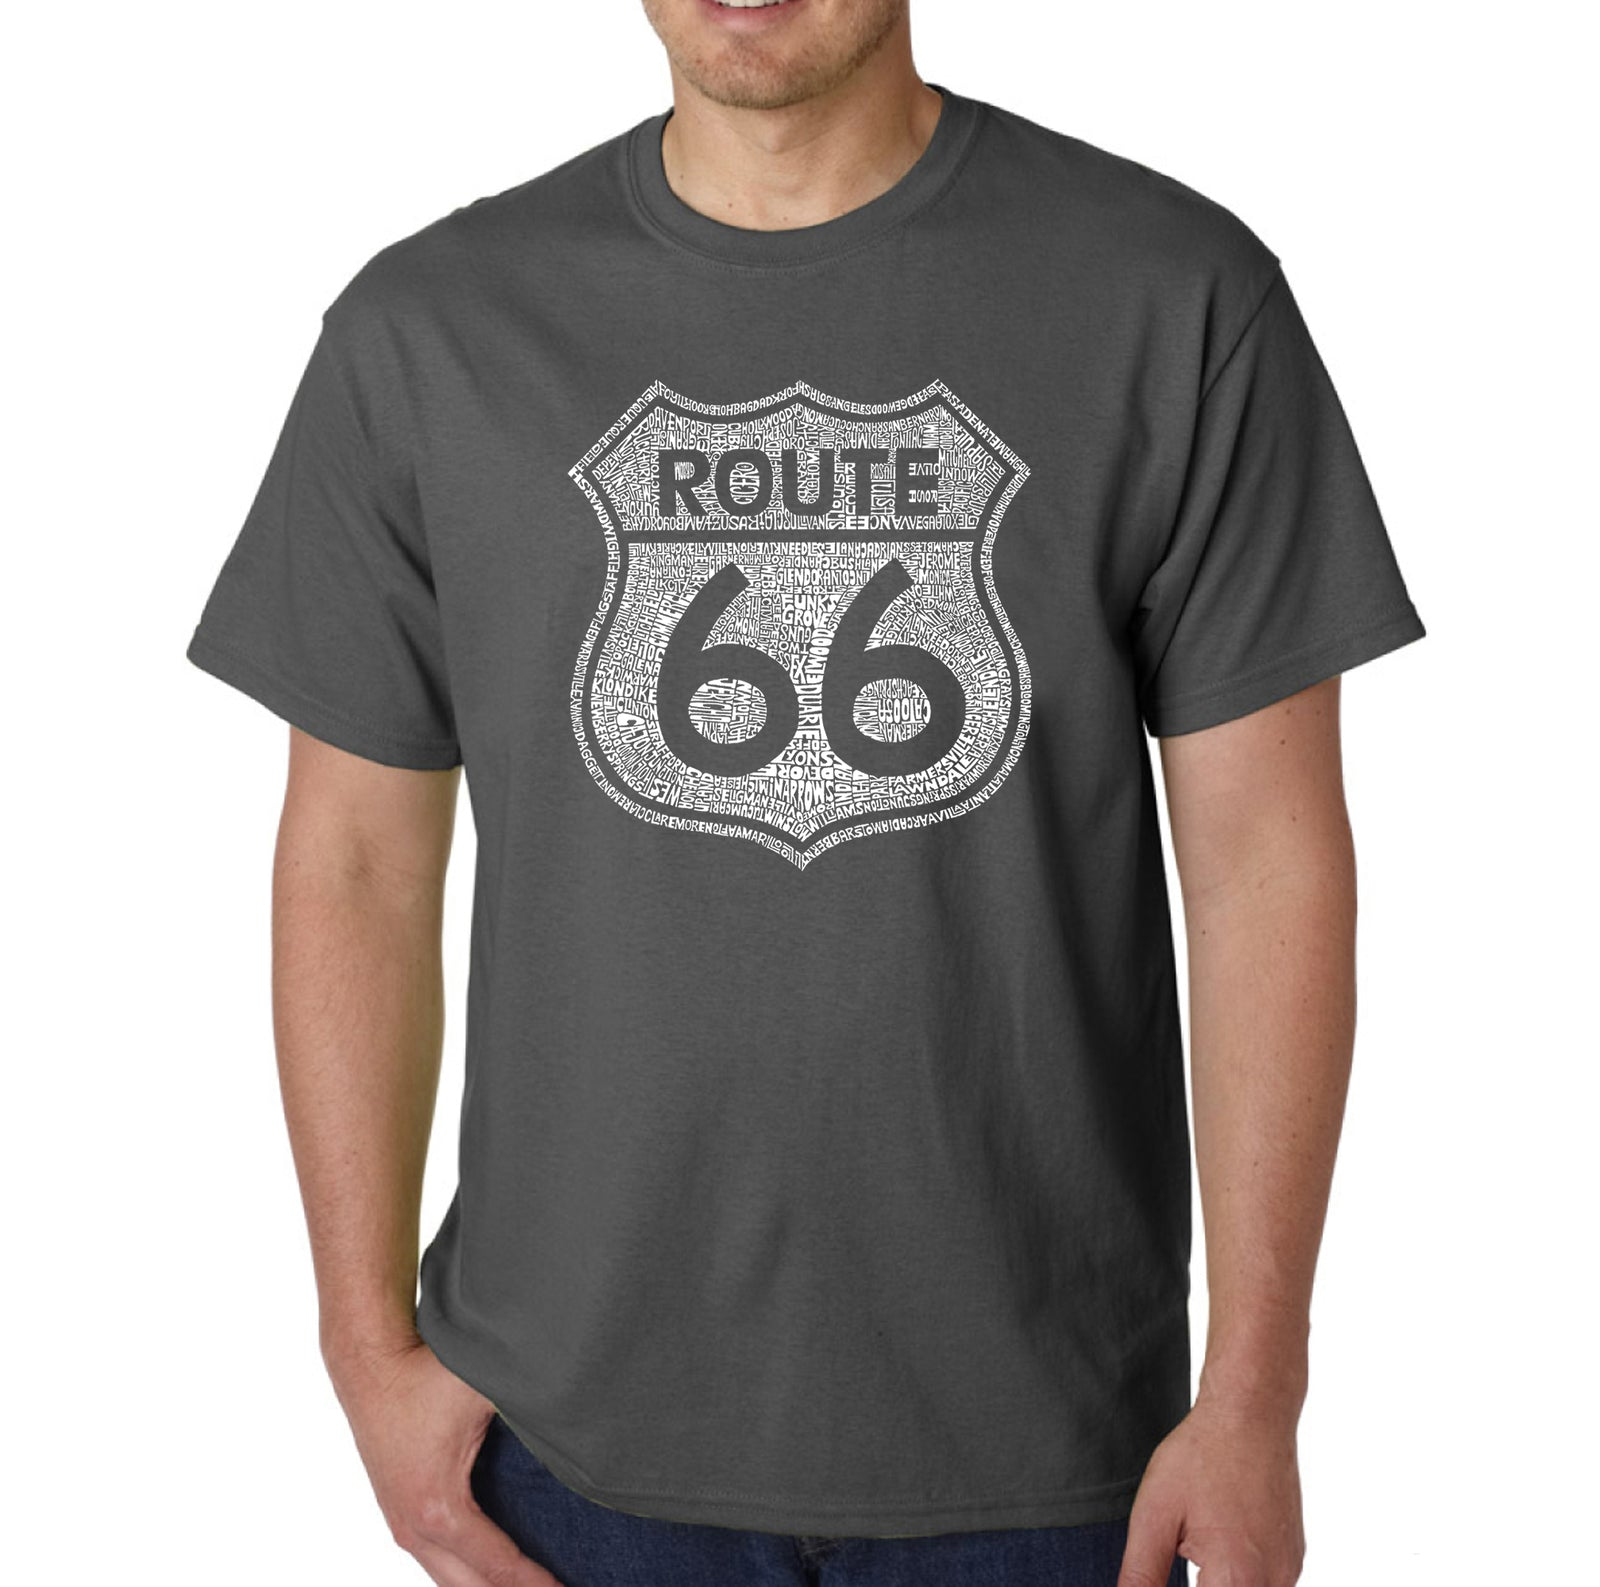 Men's T-shirt - CITIES ALONG THE LEGENDARY ROUTE 66